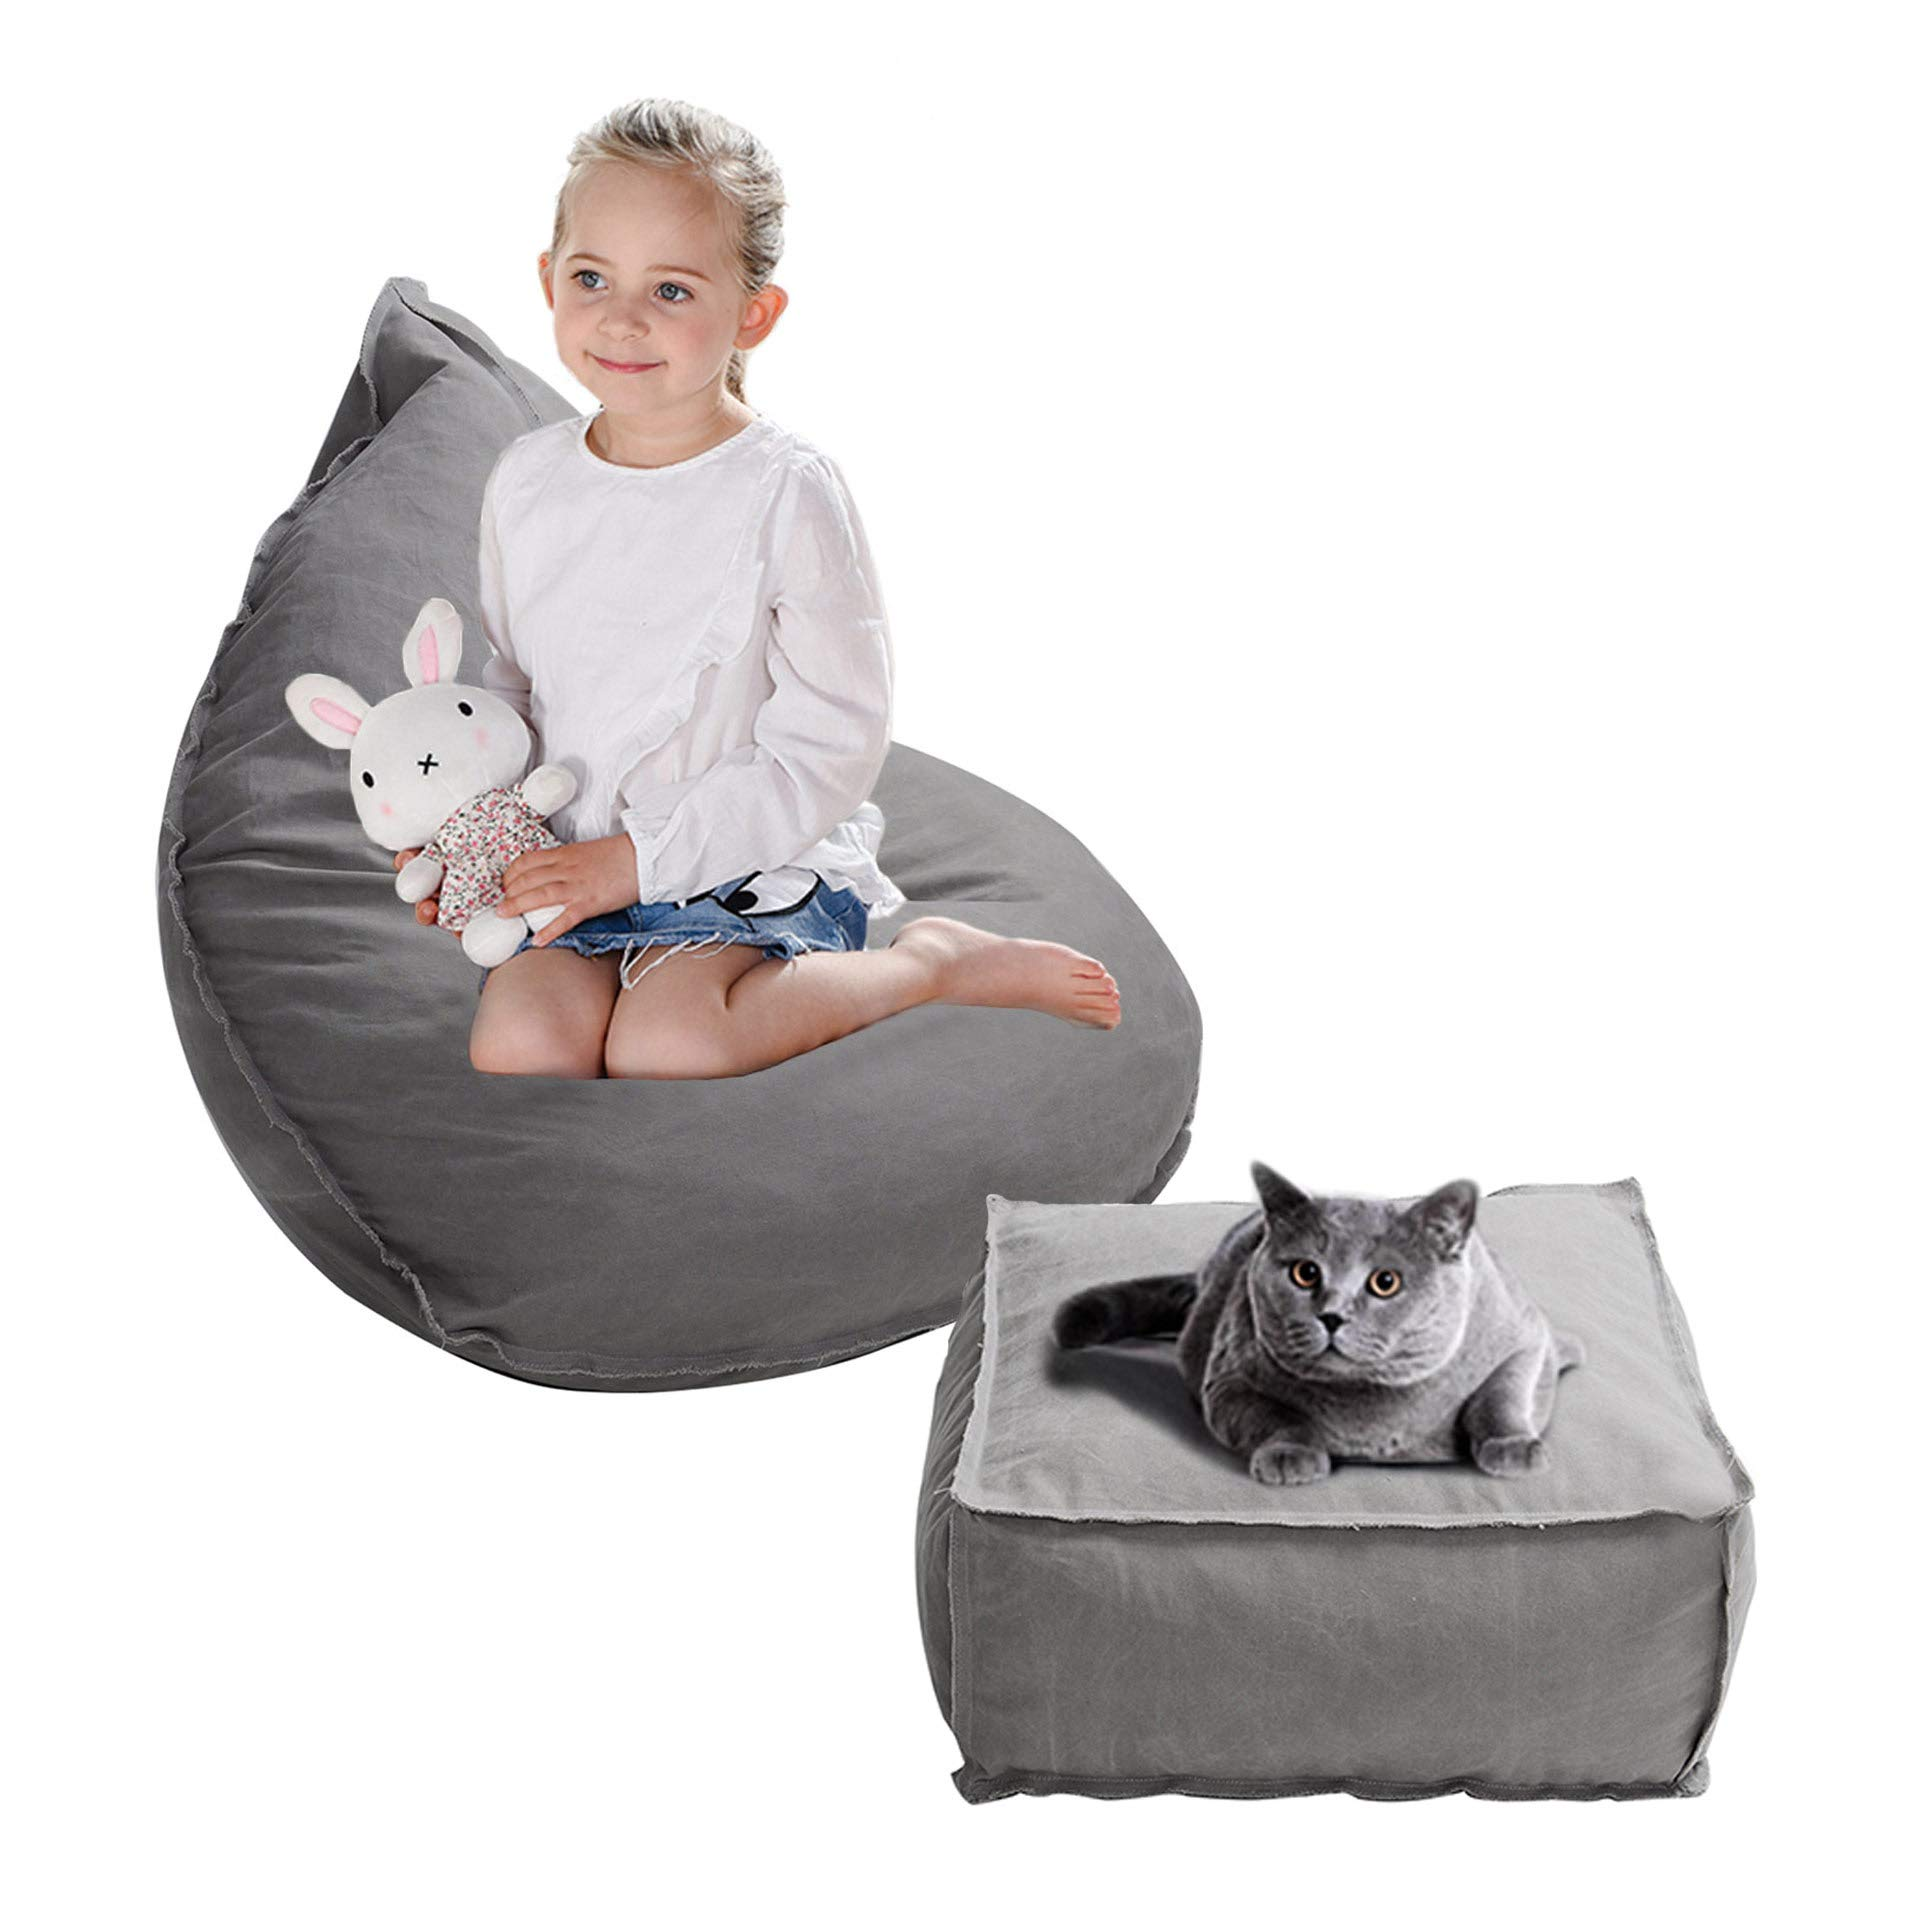 Dporticus 3 Feet Kids Bean Bag Chair Sofa Seat with Foot Pad for Children, Birthday Gifts for Boys and Girls by Dporticus